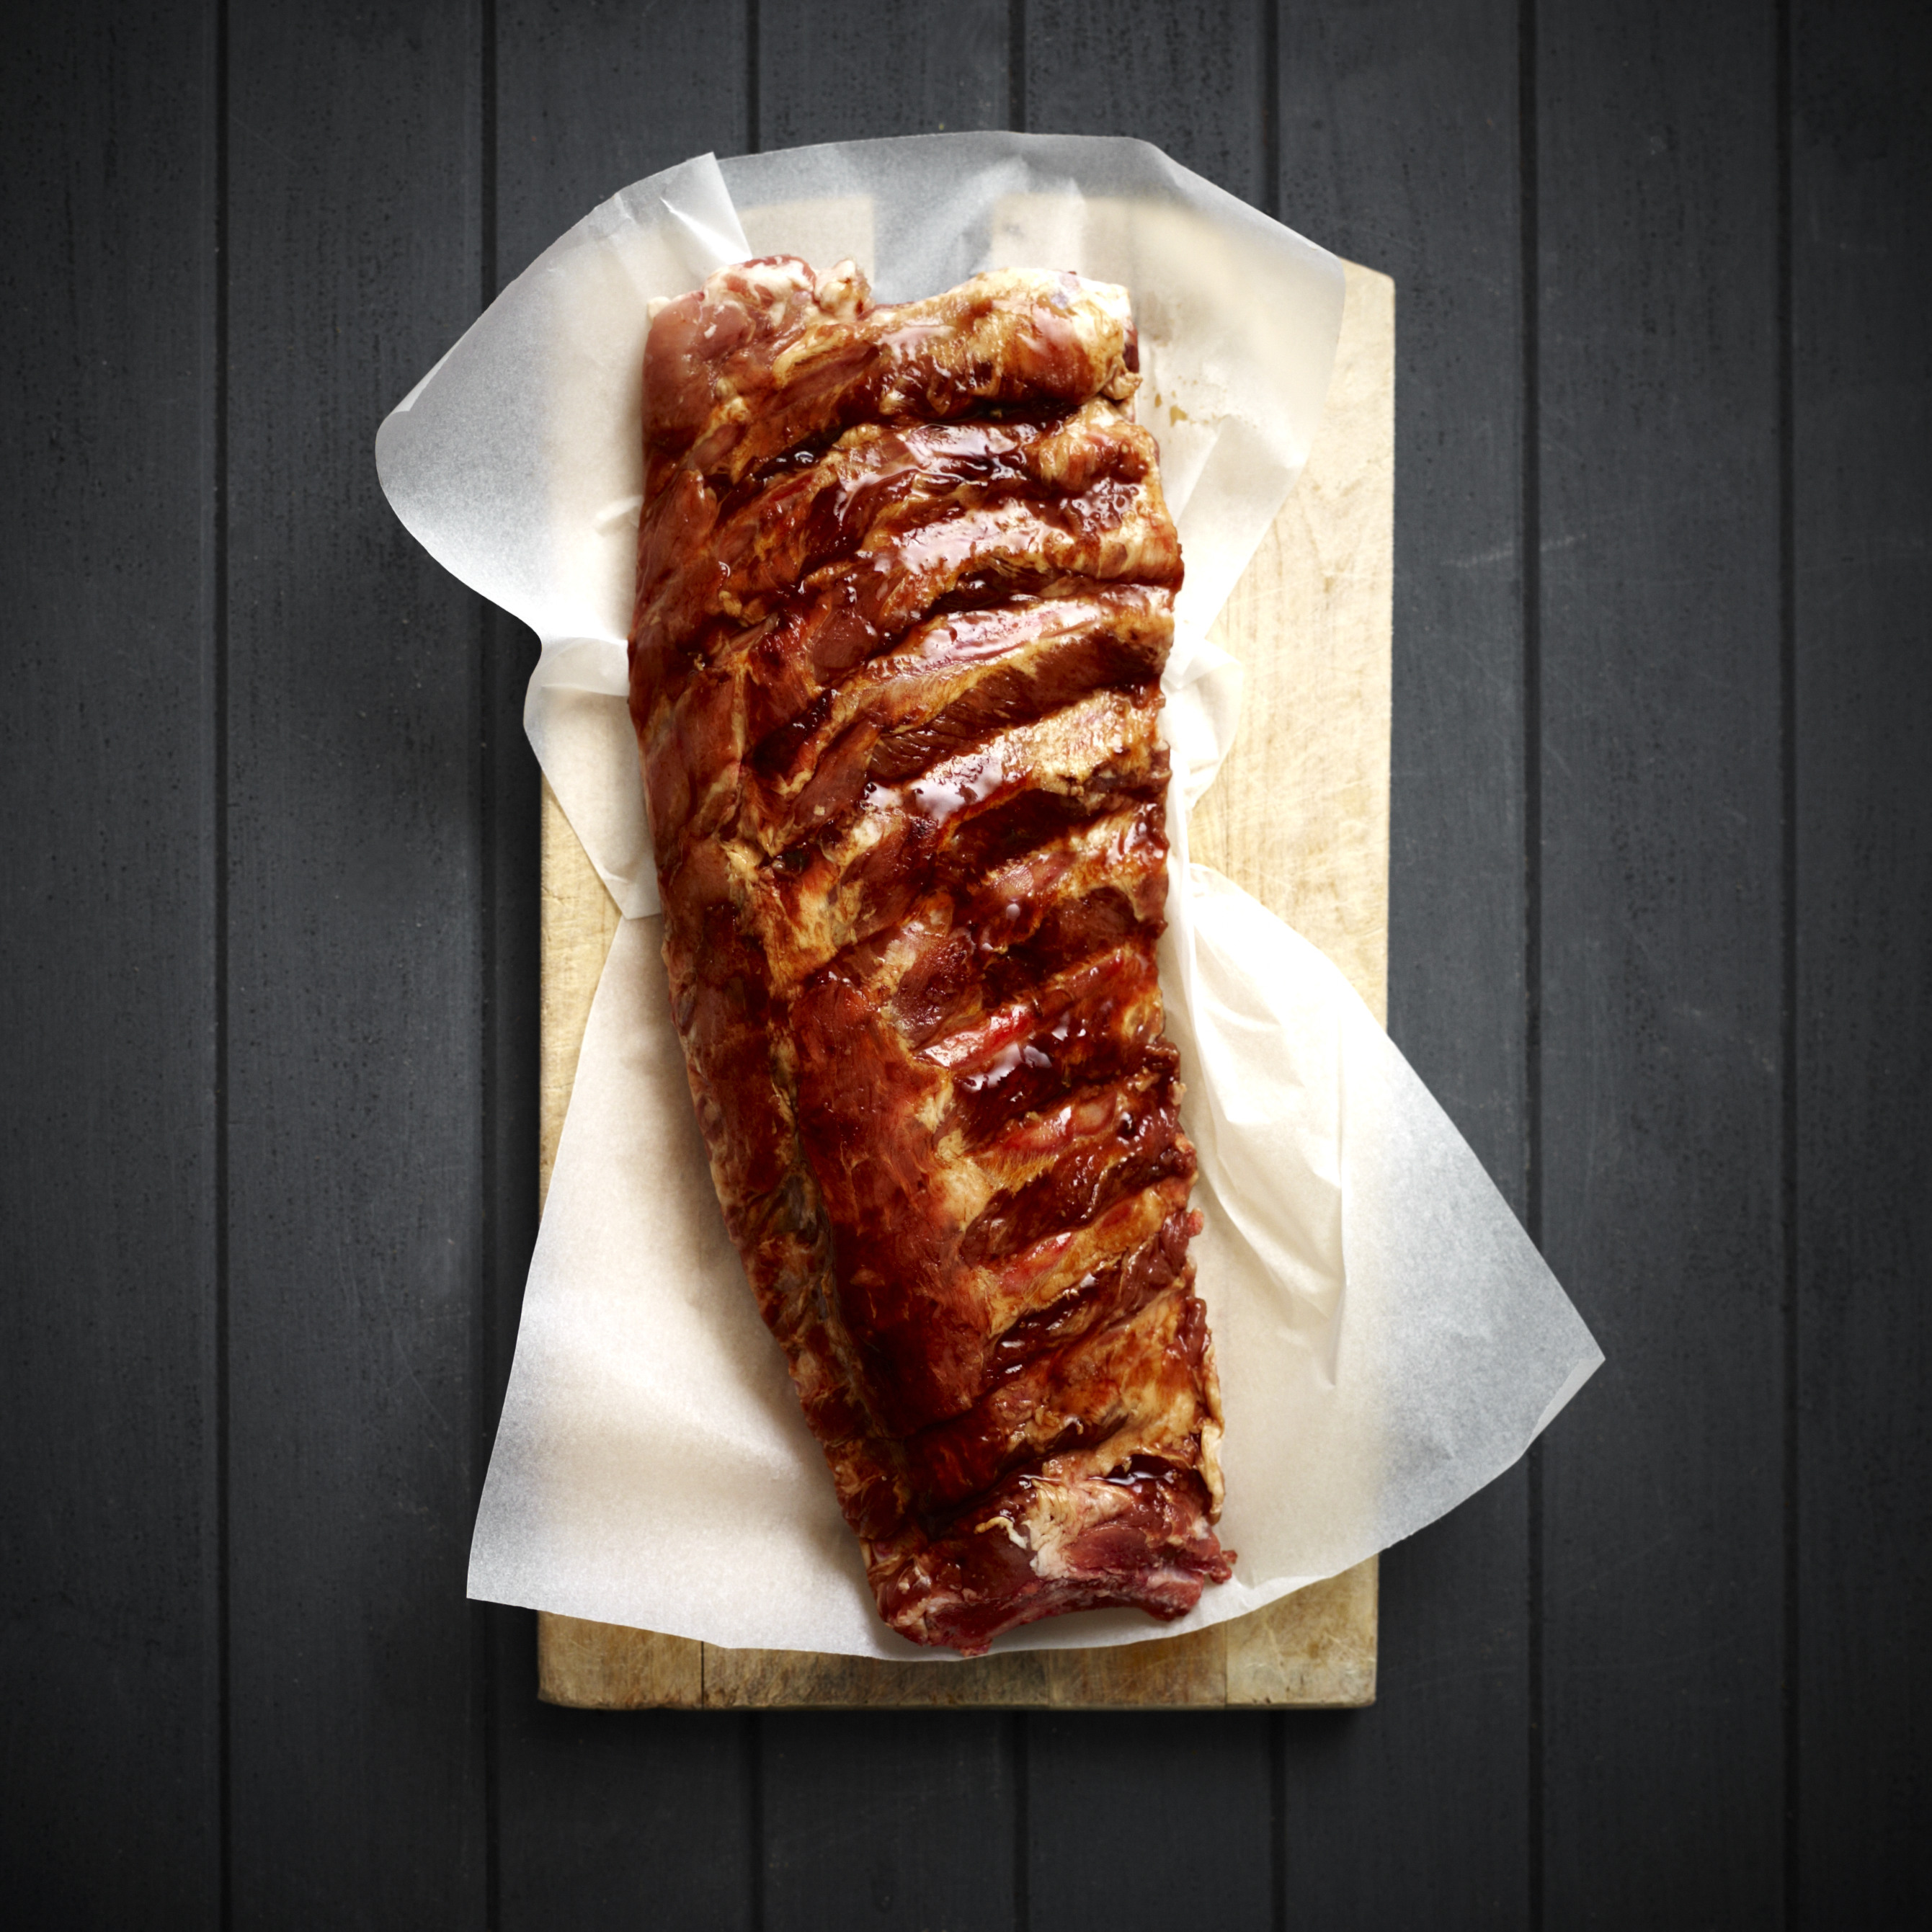 How much does 1 spare rib weight